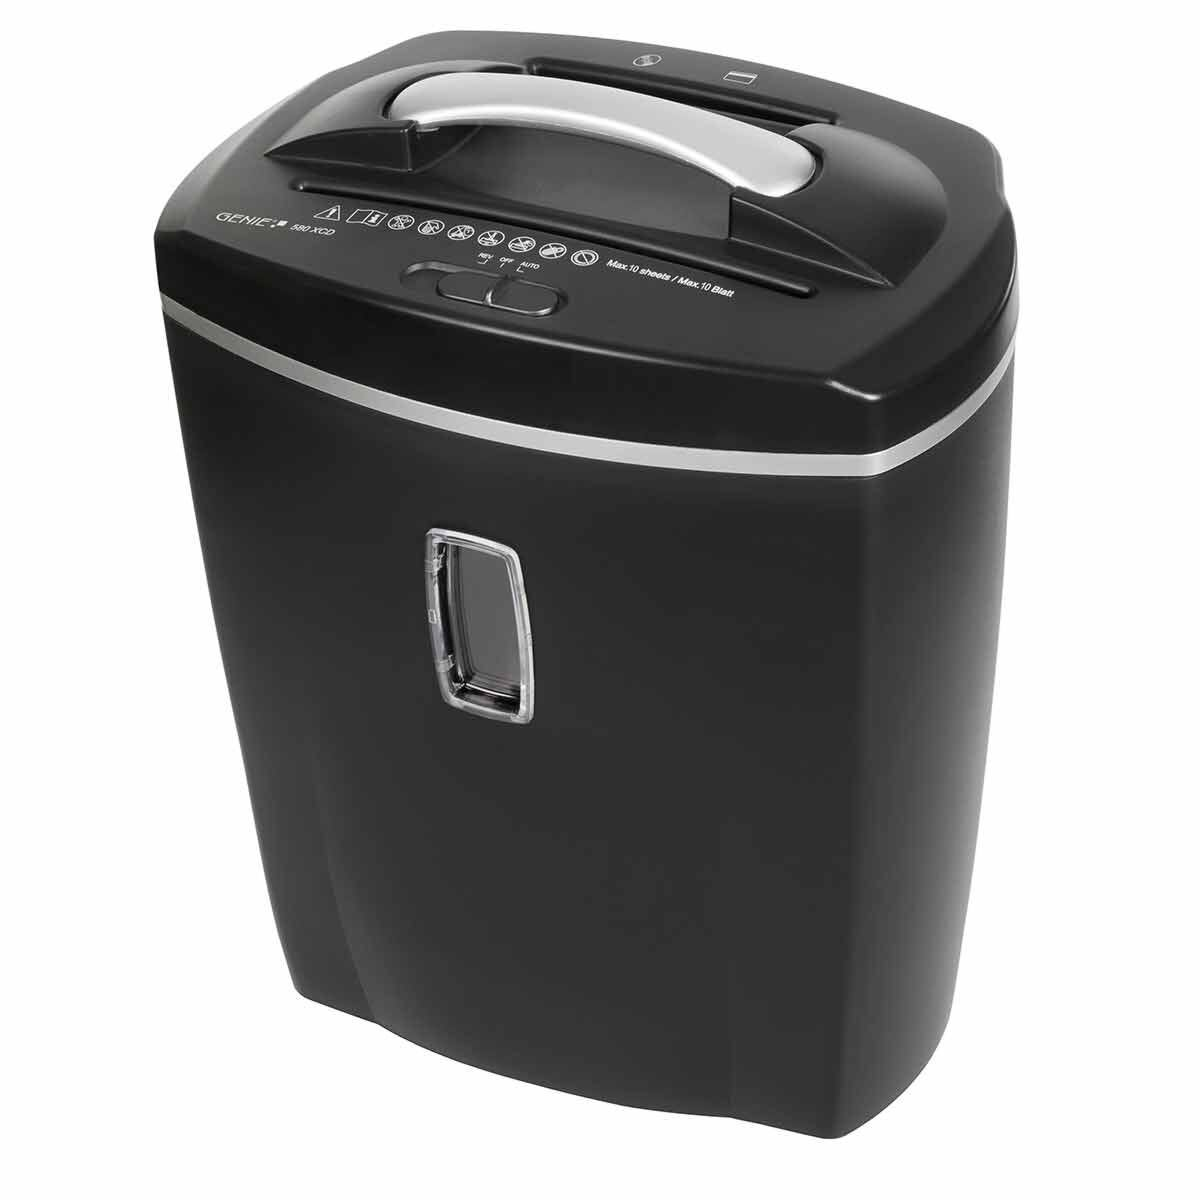 Genie 580 XCD 8 Sheet Cross Cut Shredder